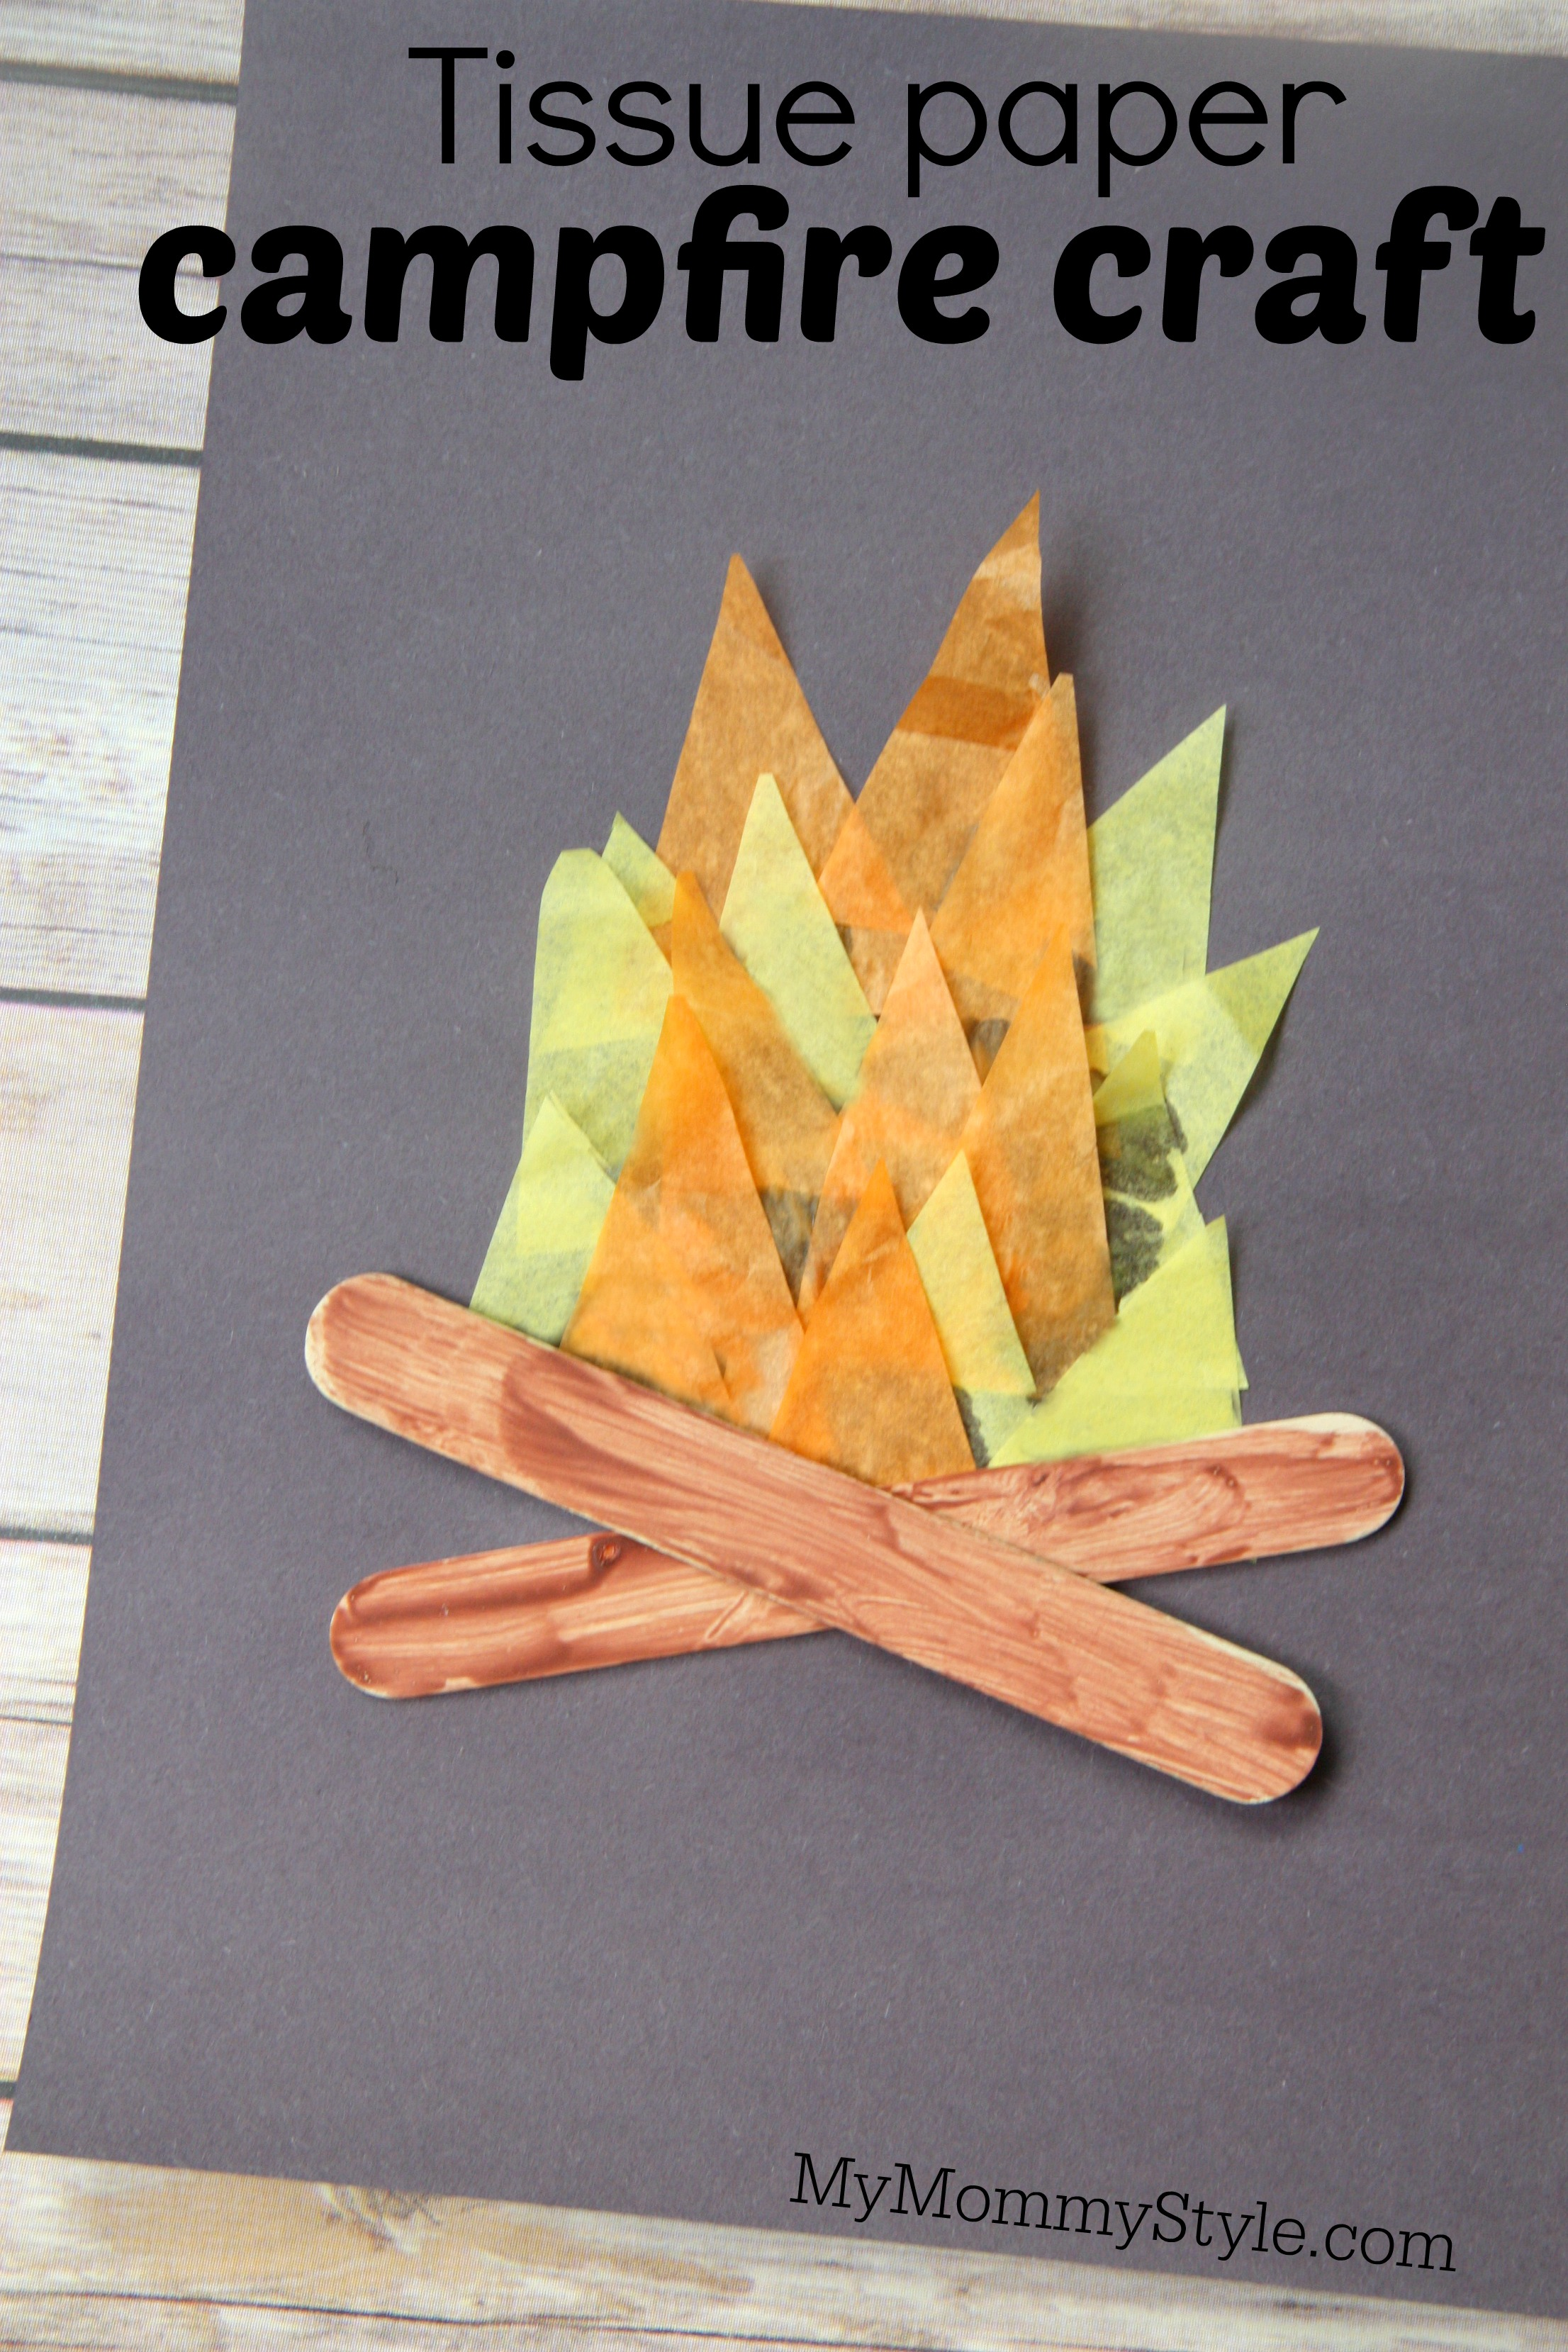 Tissue paper campfire craft my mommy style for Tissue paper for crafts